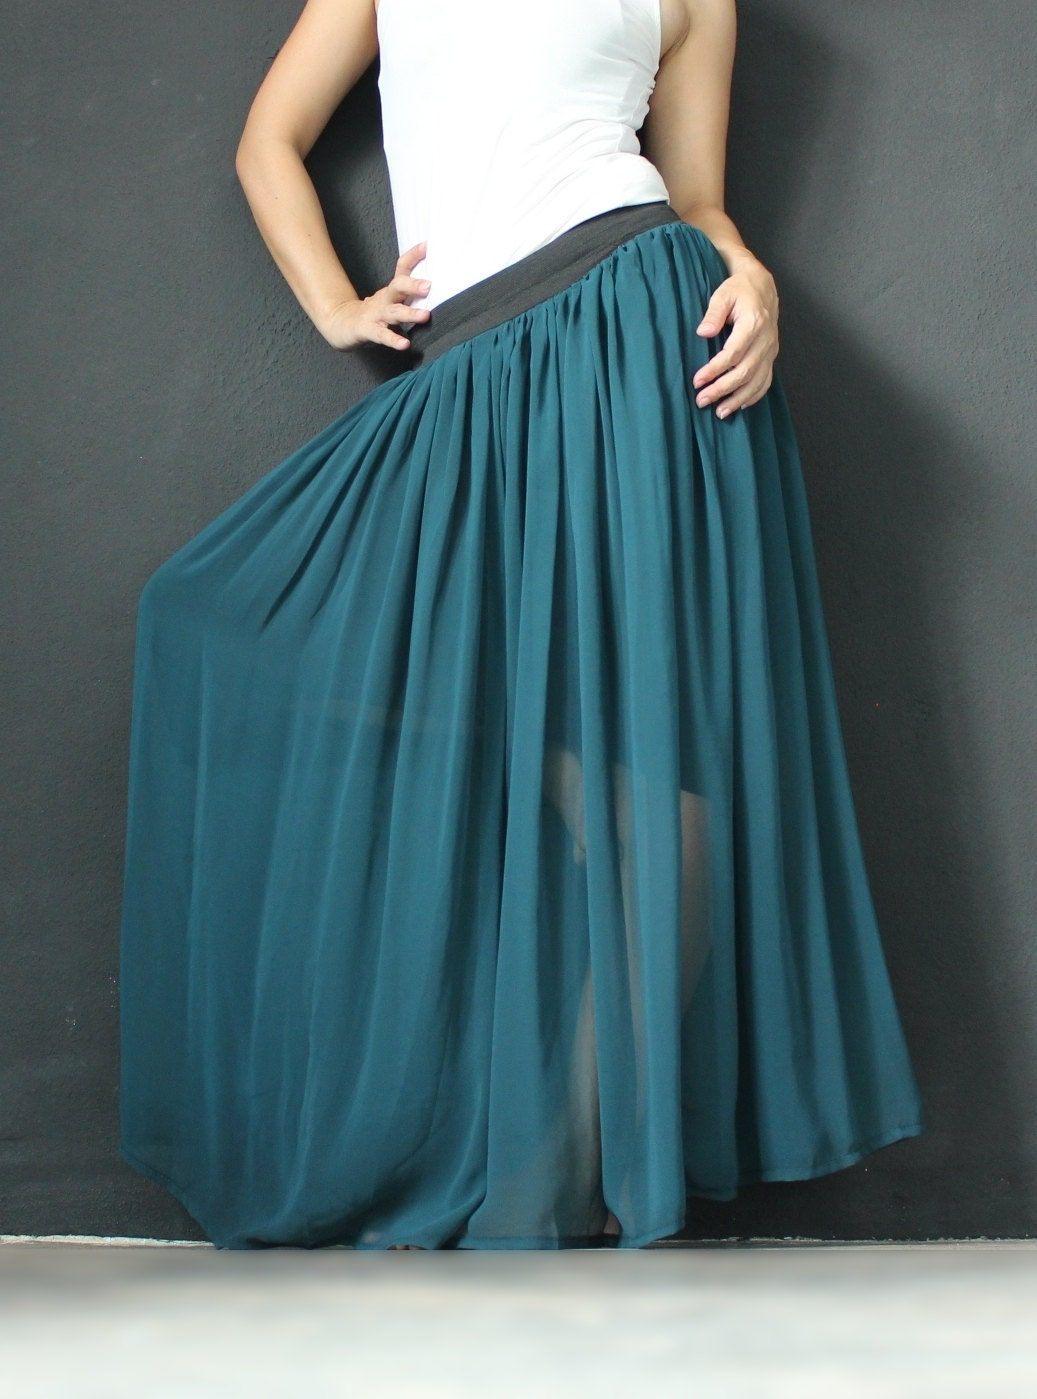 New Circle Long Skirt Women Chiffon Maxi Skirt Wide Flowing